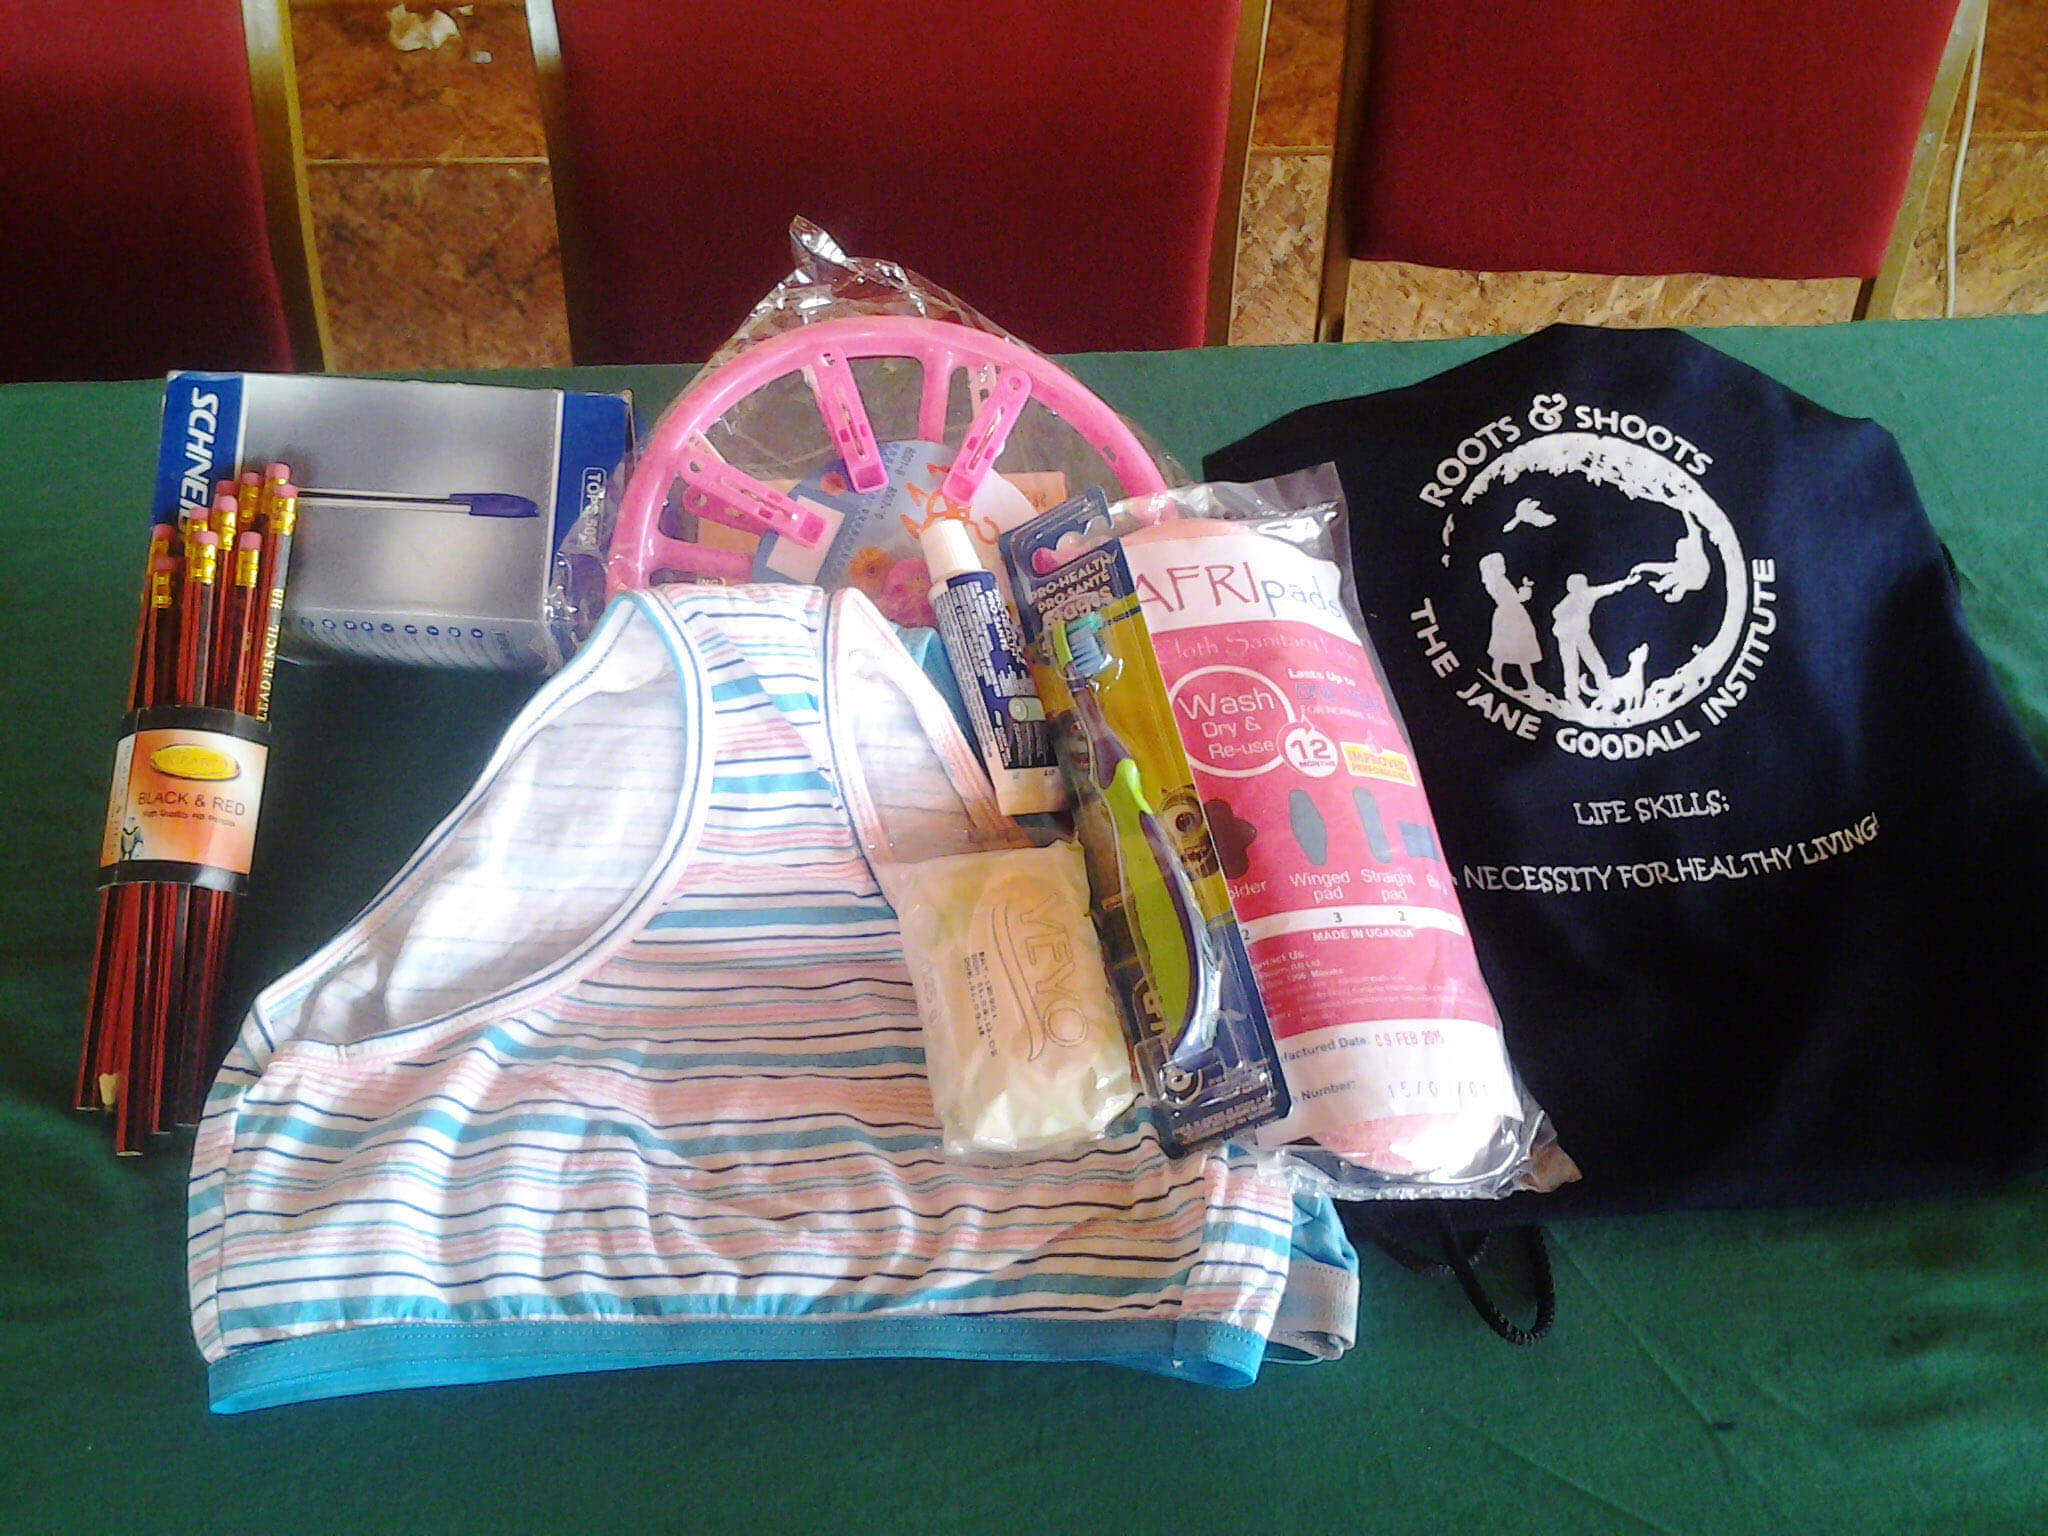 Kit of supplies given to girls in Uganda Peer to Peer program for teaching reproductive health